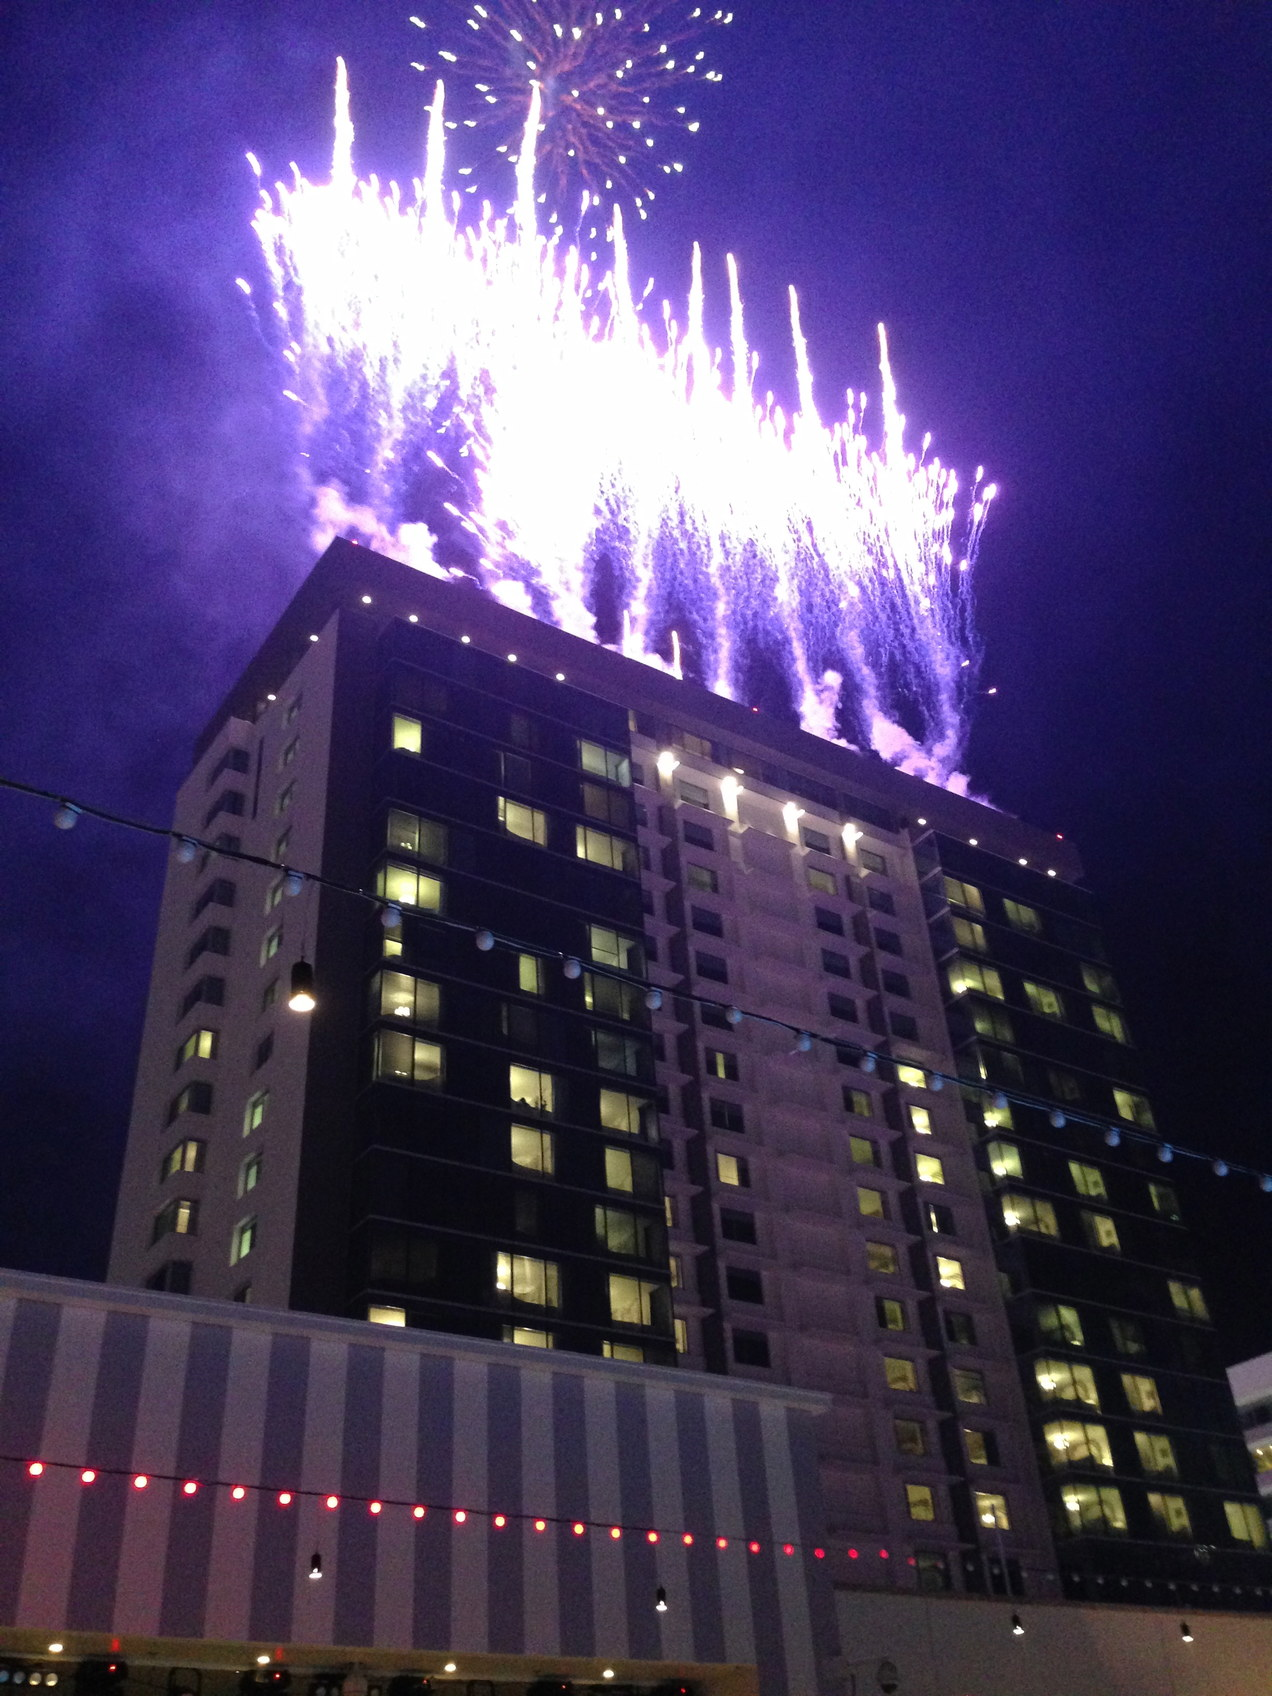 23/08/14 Grand opening at SLS Las Vegas